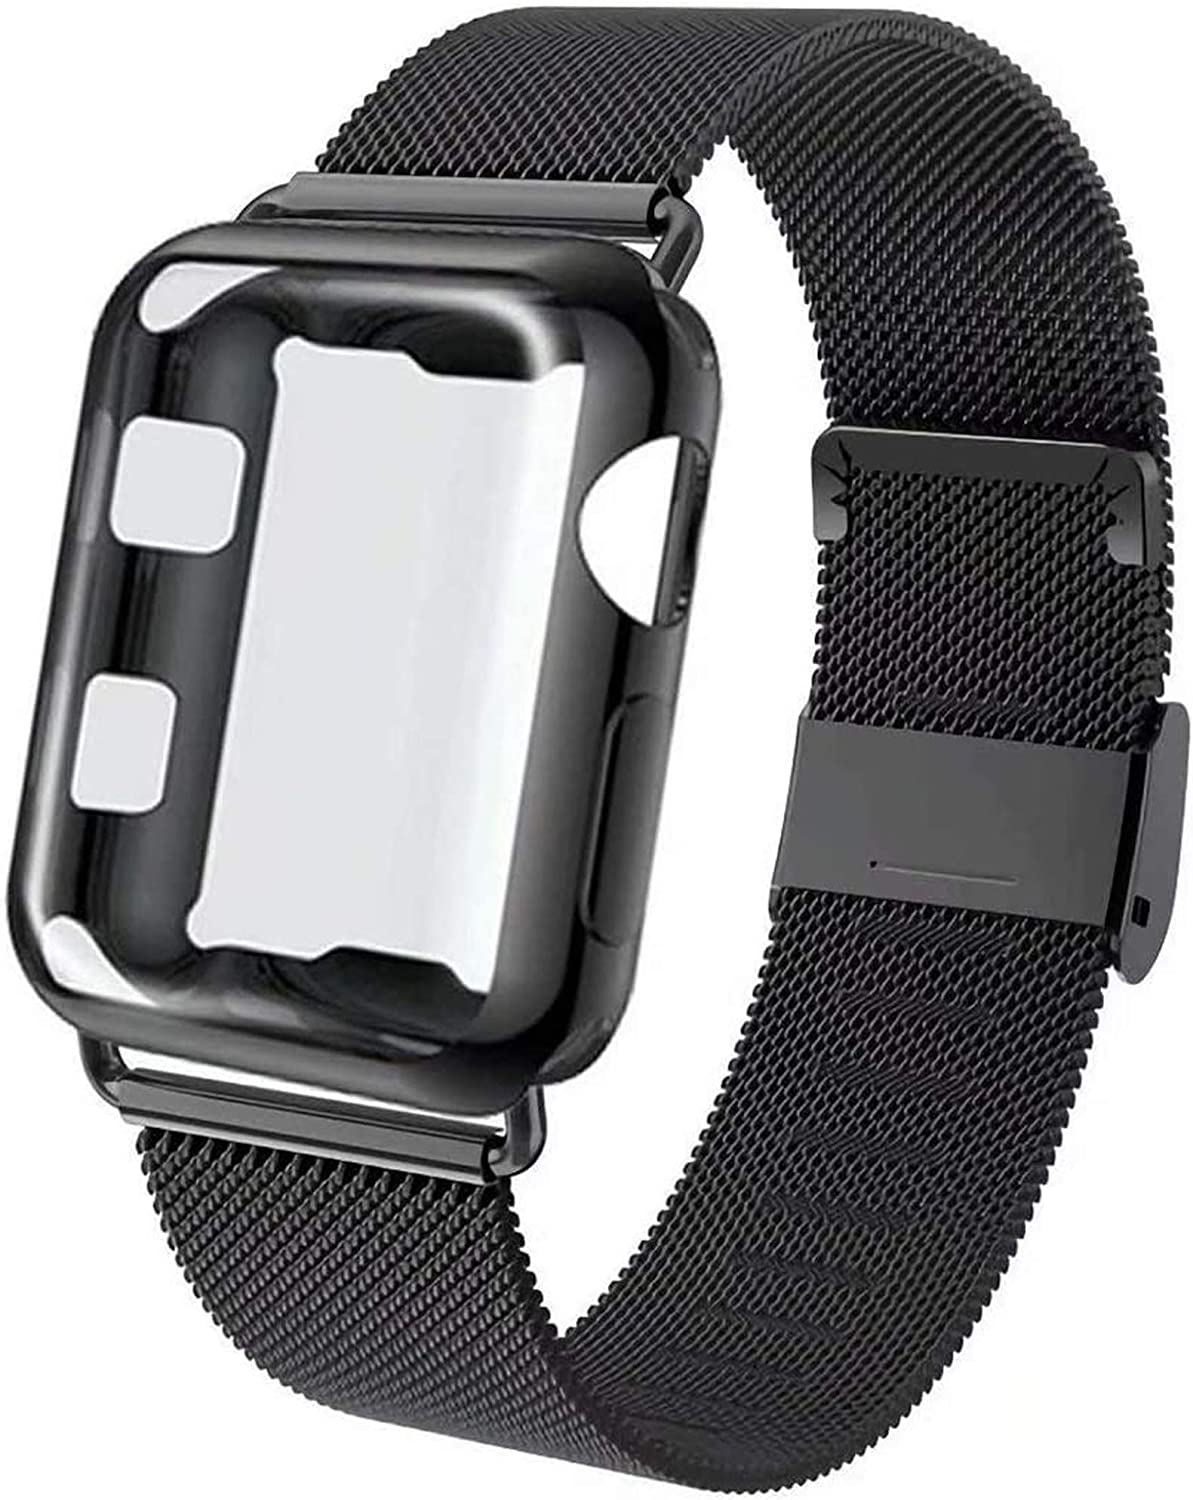 GBPOOT Compatible for Apple Watch Band 38mm 40mm 42mm 44mm with Screen Protector Case, Sports Wristband Strap Replacement Band with Protective Case for Iwatch Series 6/SE/5/4/3/2/1,38mm,Black